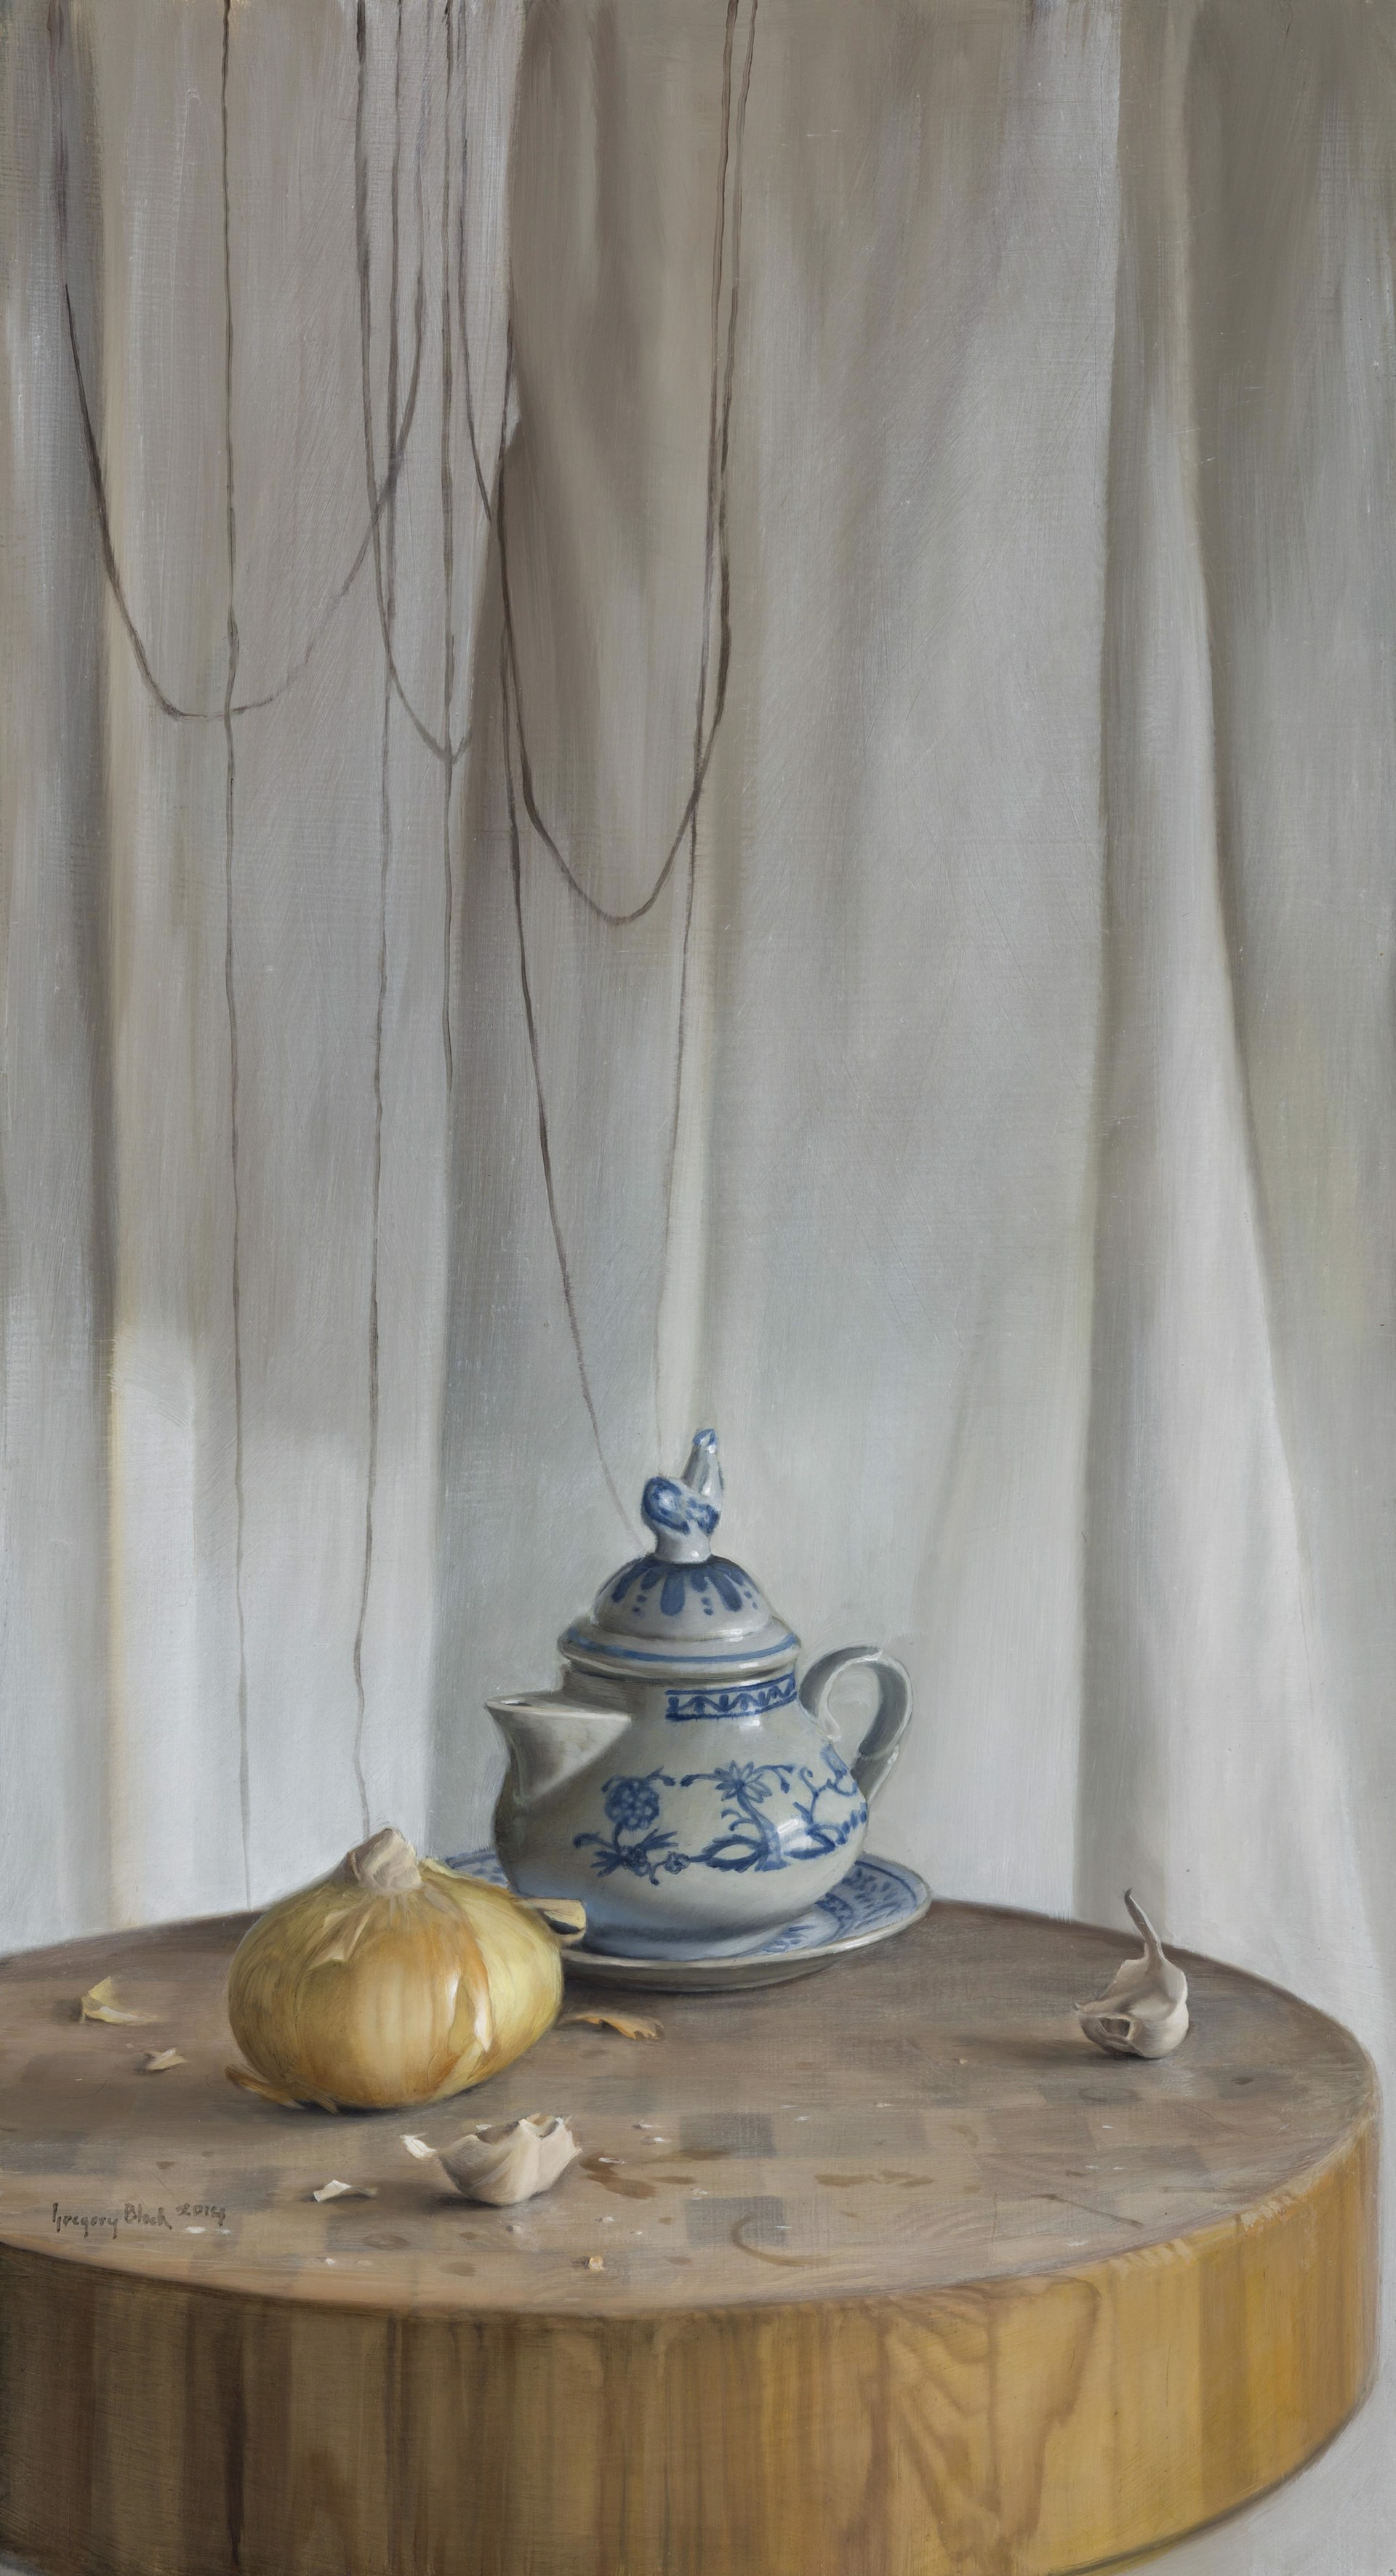 Onion and Teapot by Gregory Block